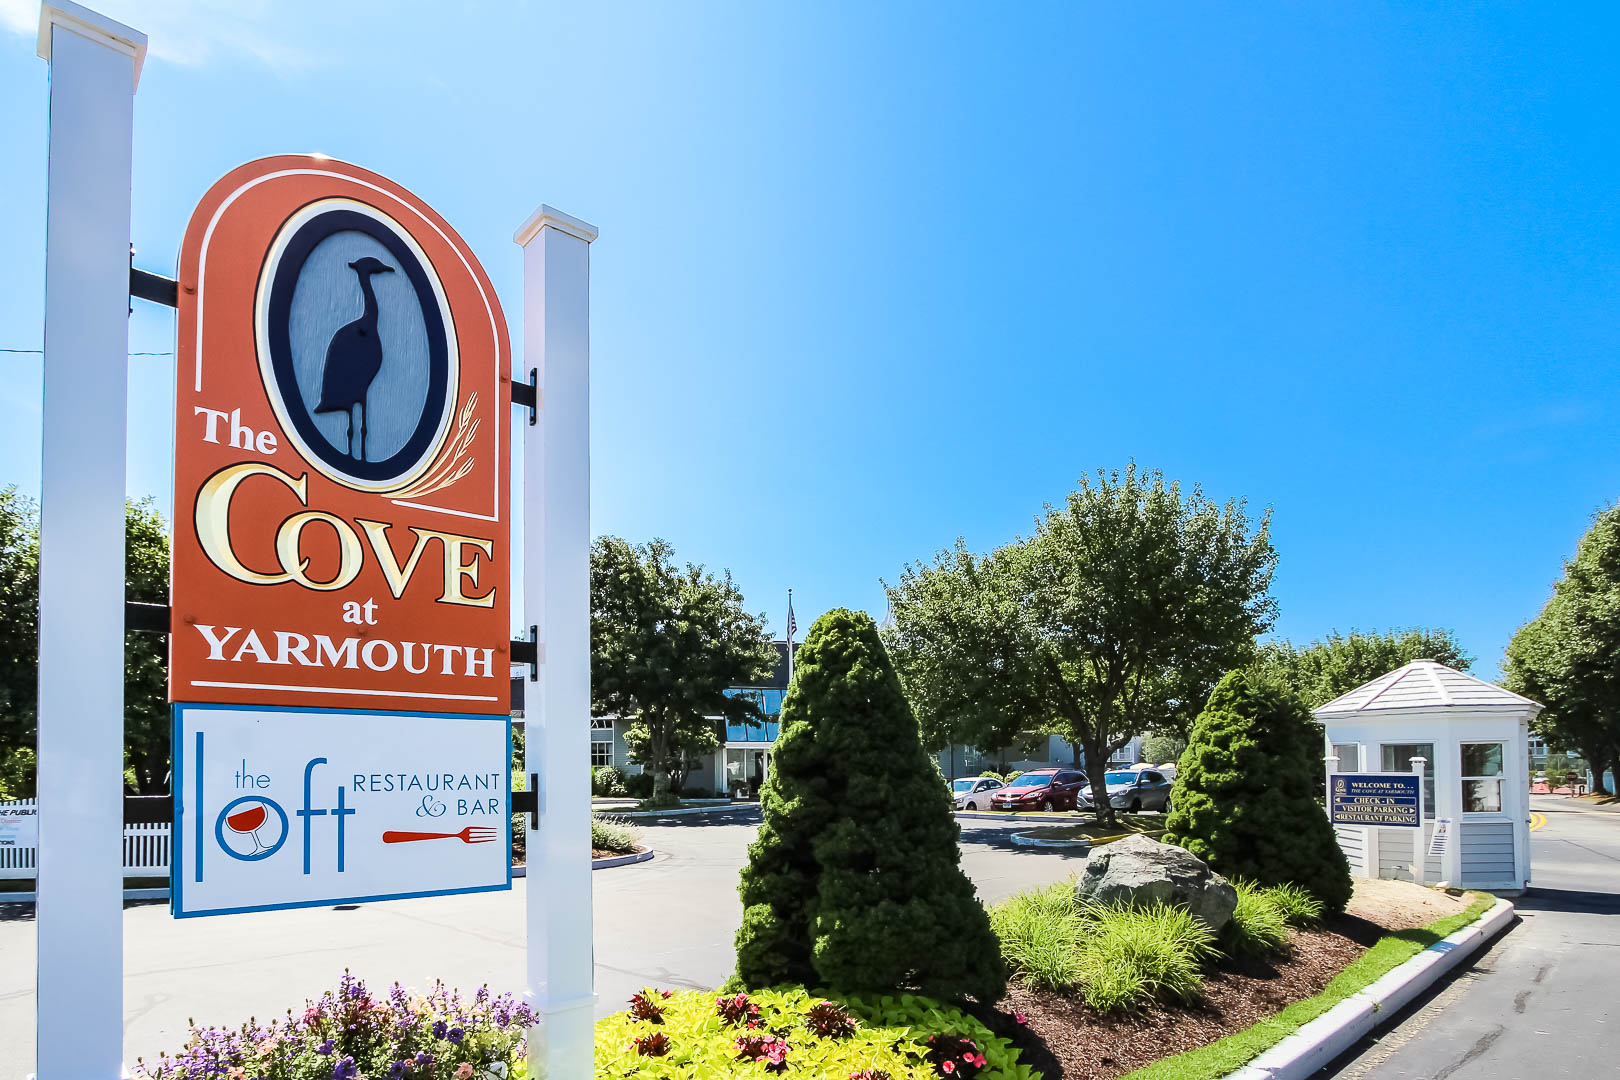 Beautiful skies and resort entrance at VRI's The Cove at Yarmouth in Massachusetts.